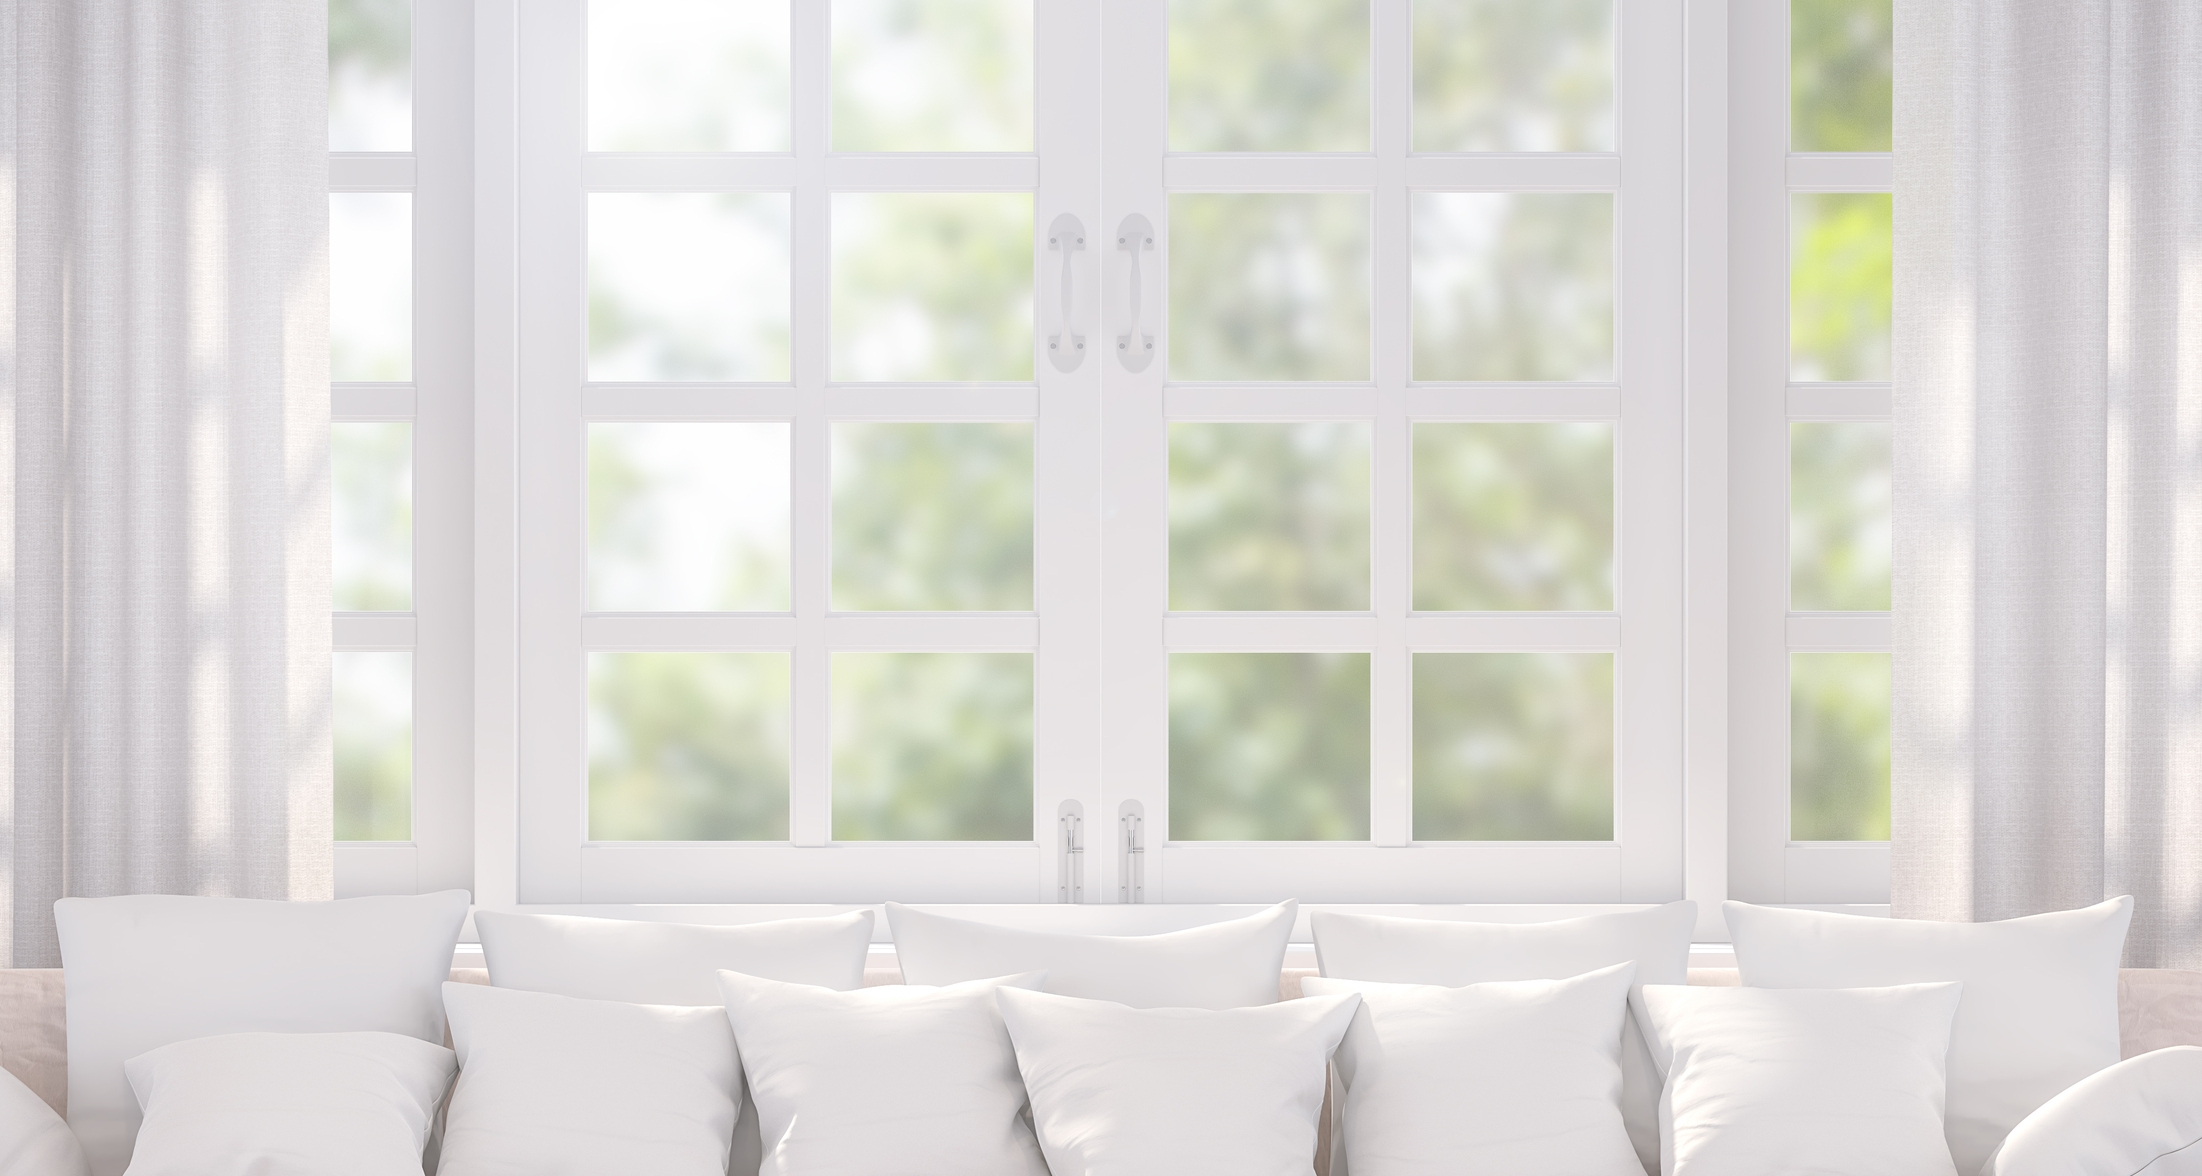 - Each window is customized and retrofitted to fityour home.